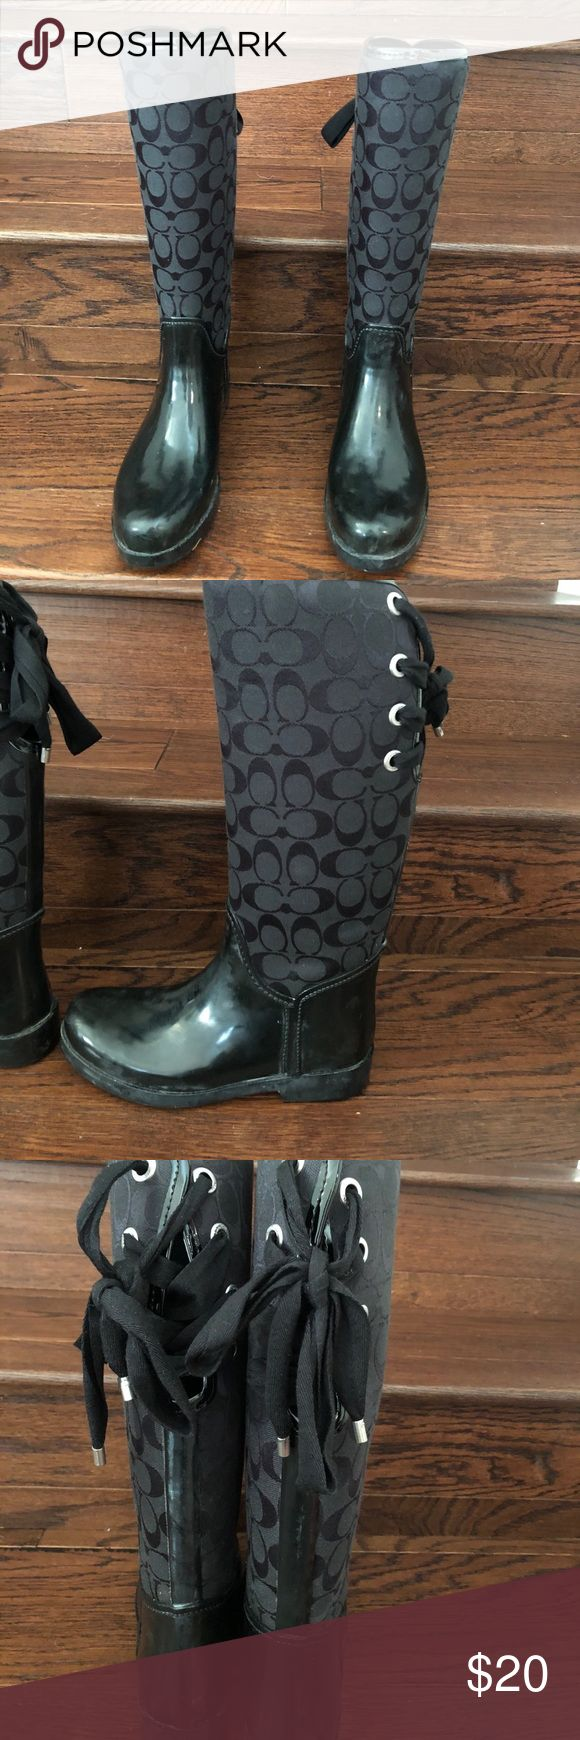 Best 25 Coach Rain Boots Ideas On Pinterest Coach Boots